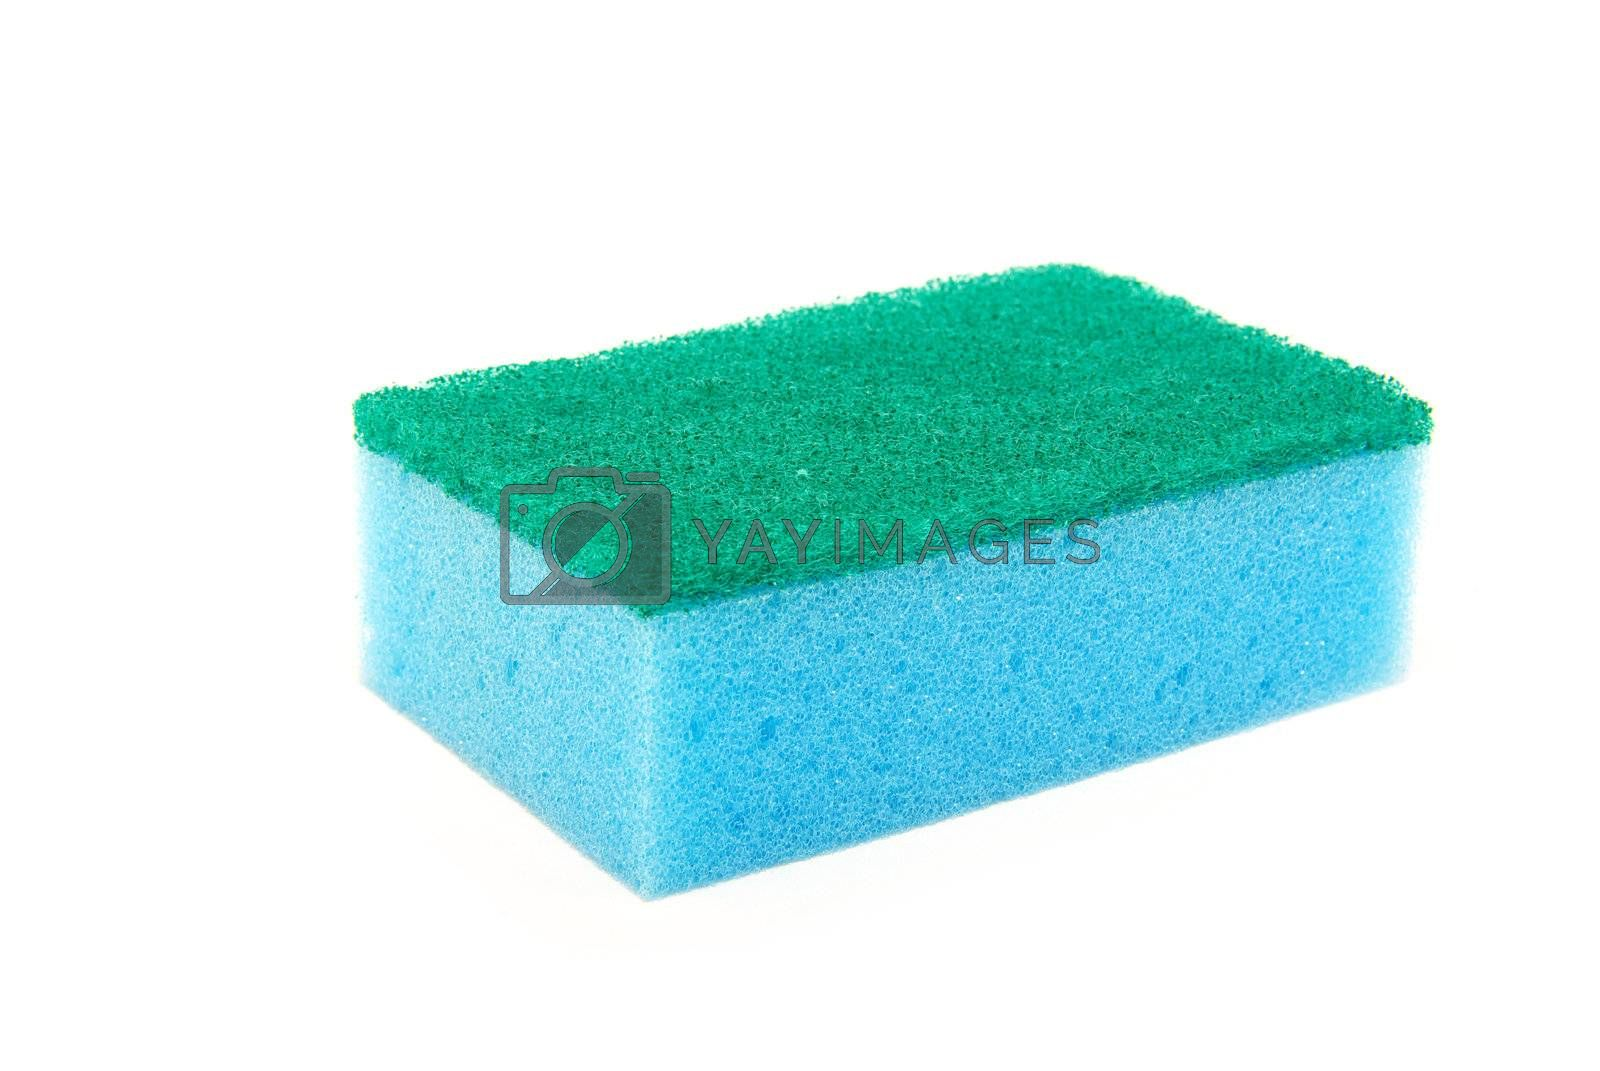 kitchen sponges isolated on a white background